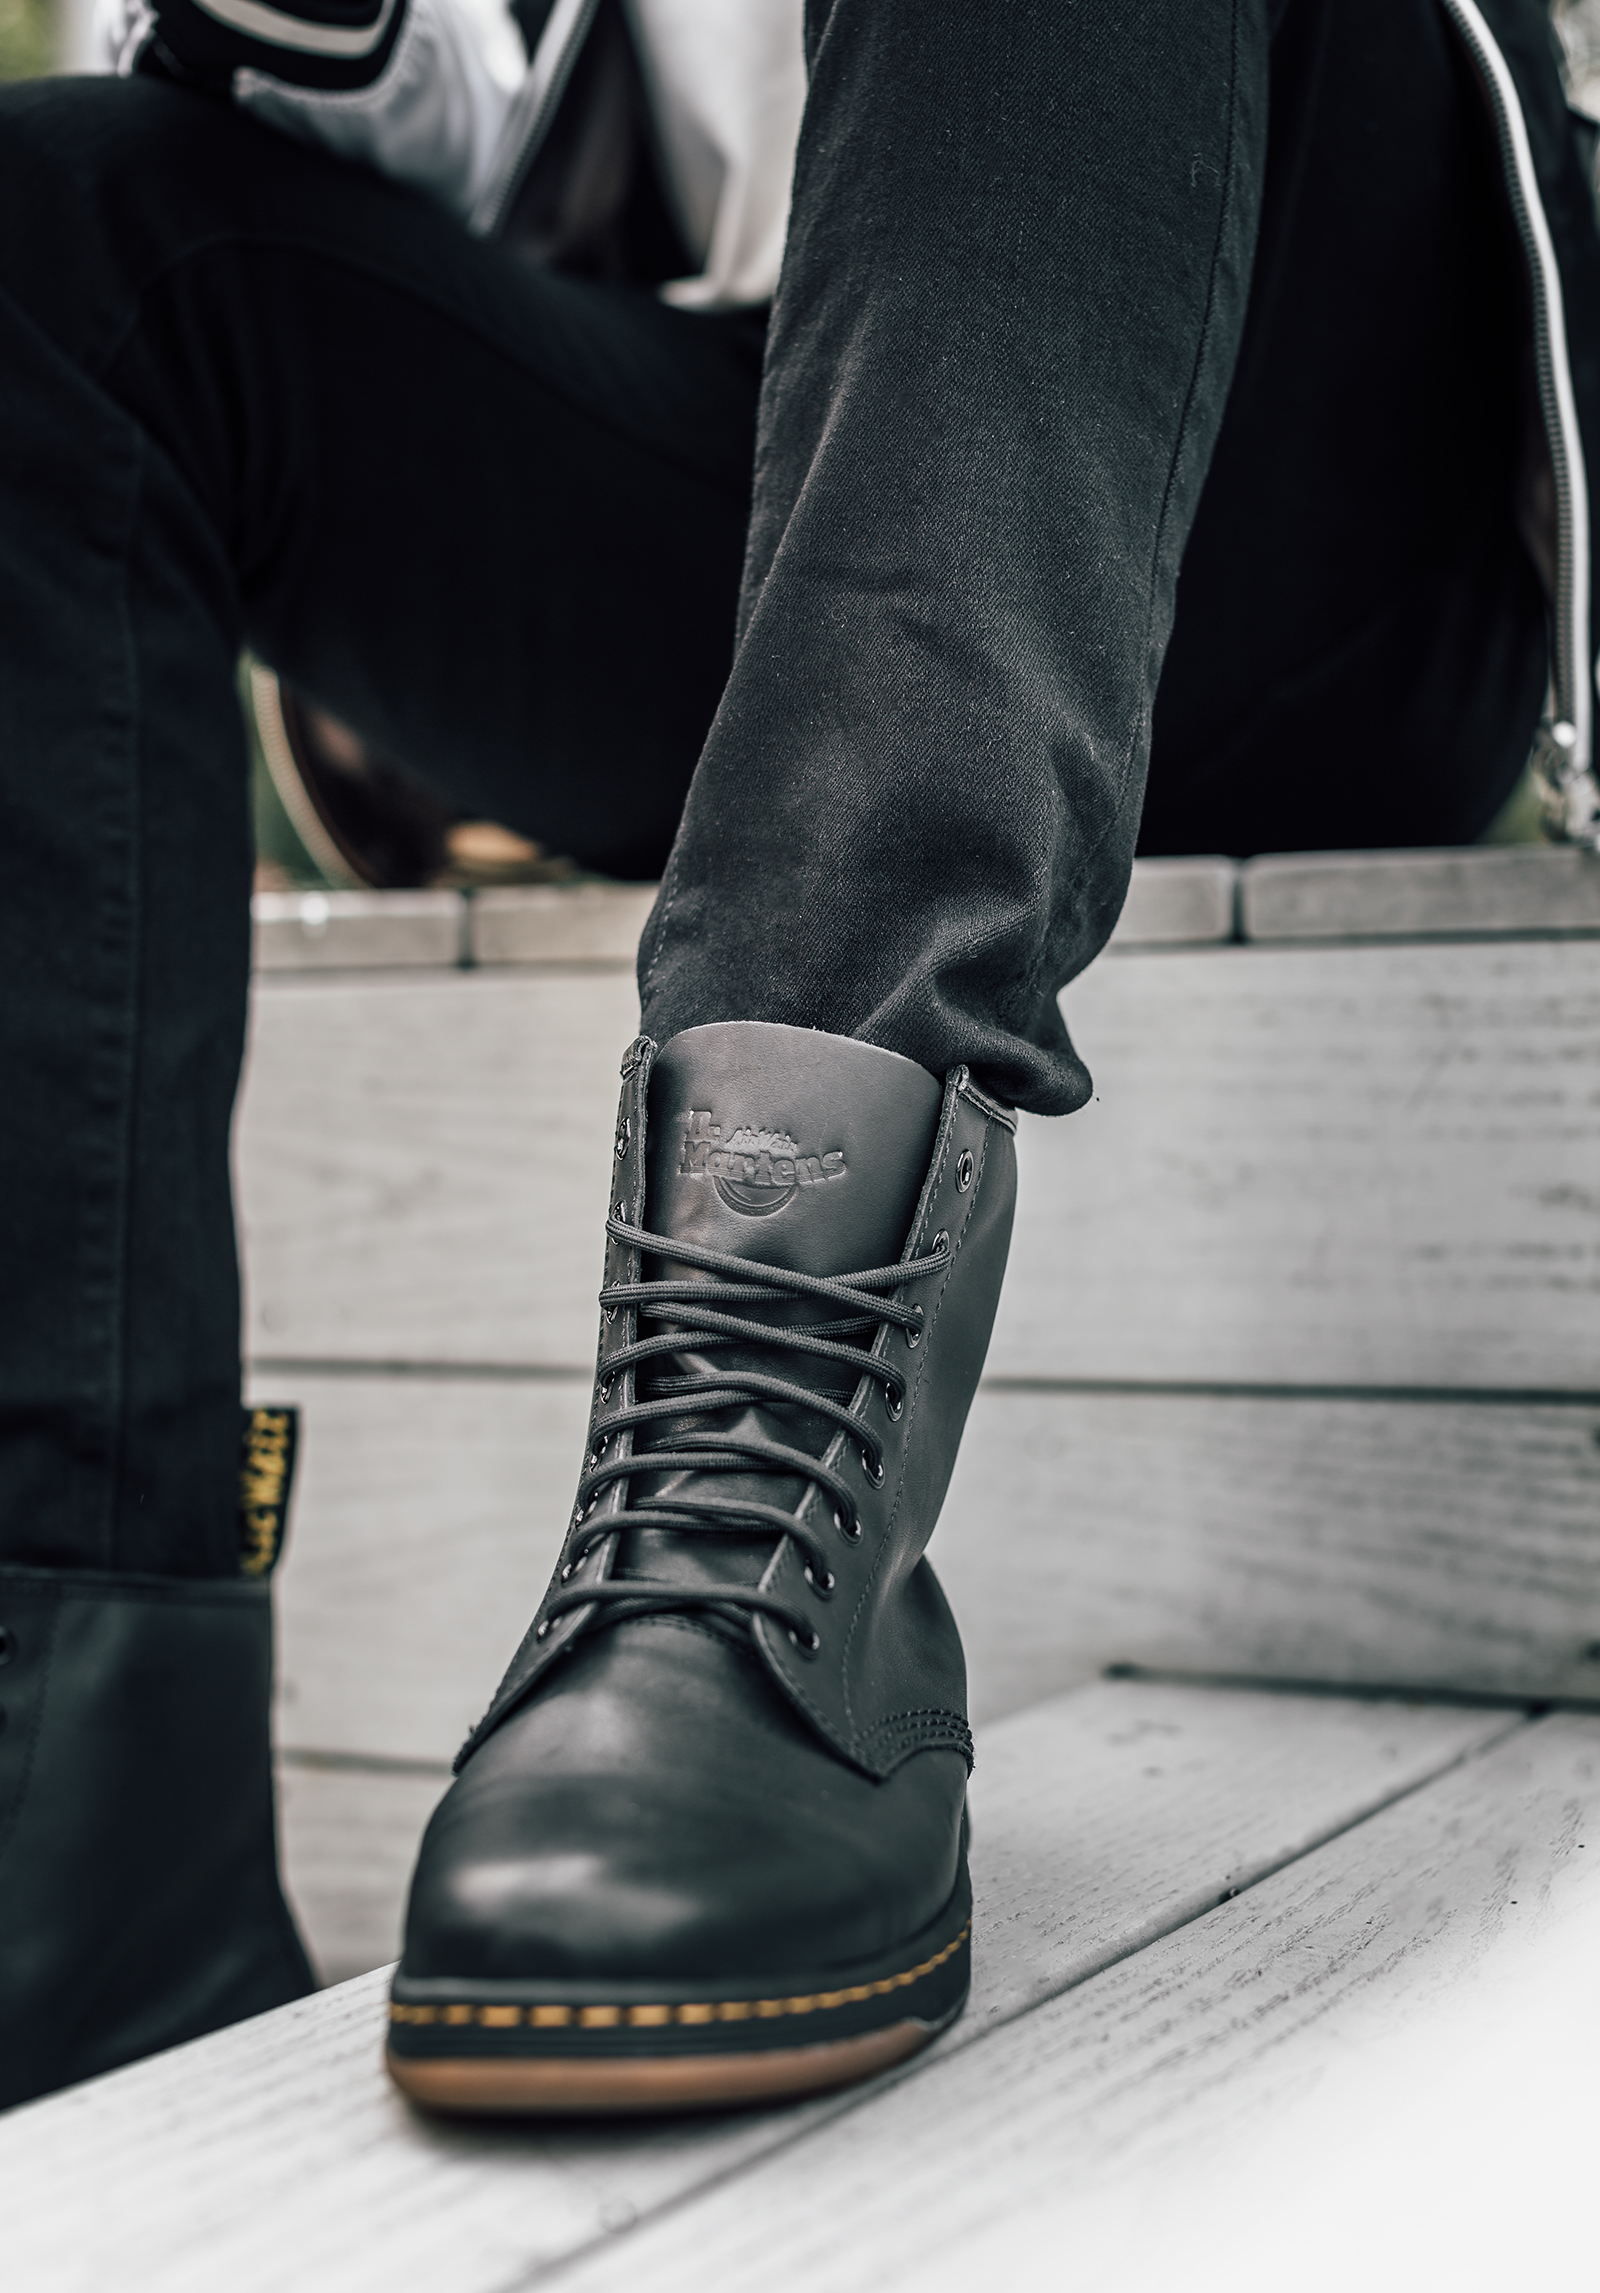 Dr Lite Collection Dm's Its Launches Hypebeast Martens qxXrzqwp